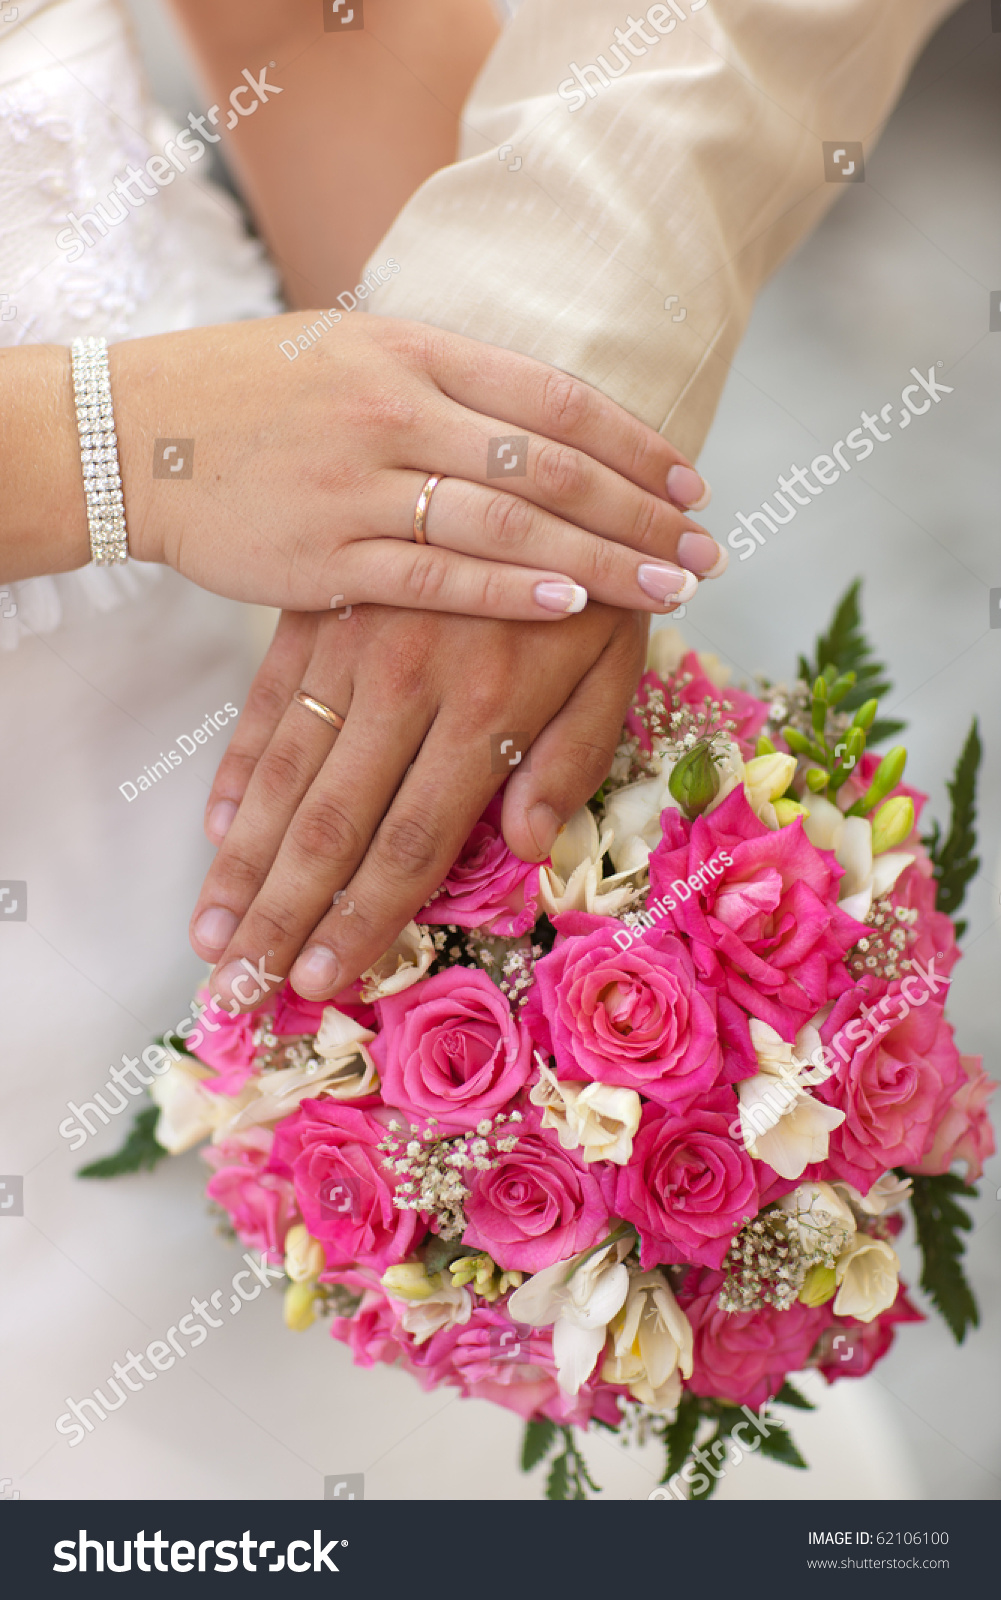 Hands Just Married Couple Marriage Rings Stock Photo & Image ...